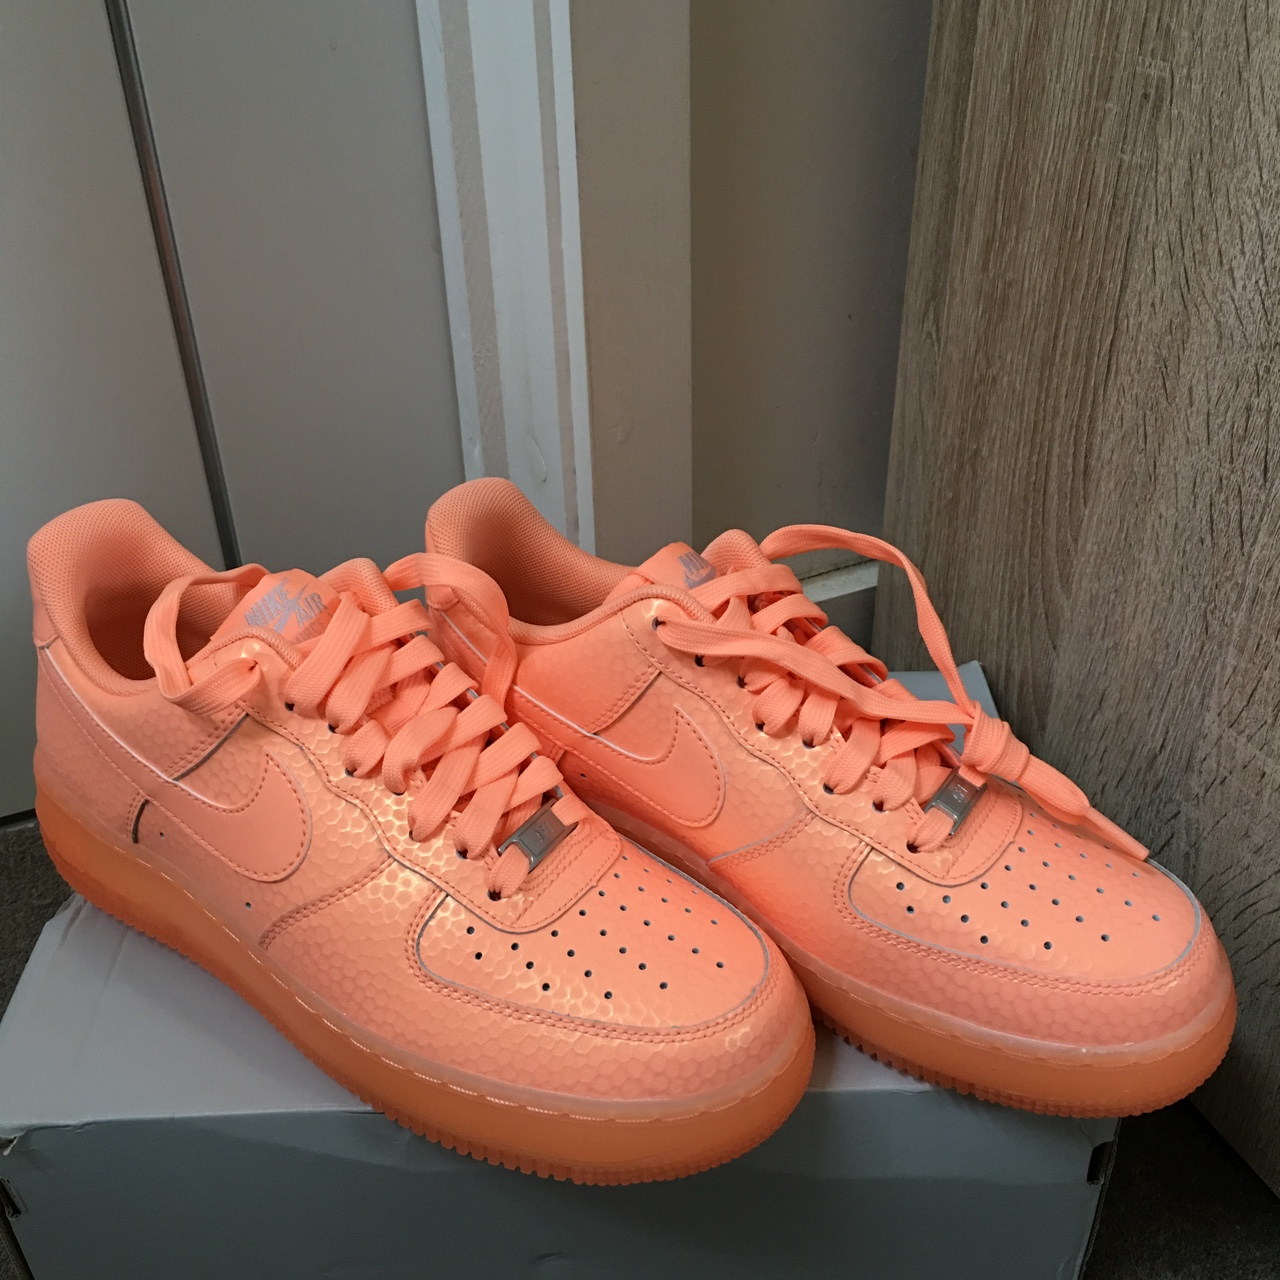 Nike Air Force 1 sunset glow UK size 6.5. Never been Depop